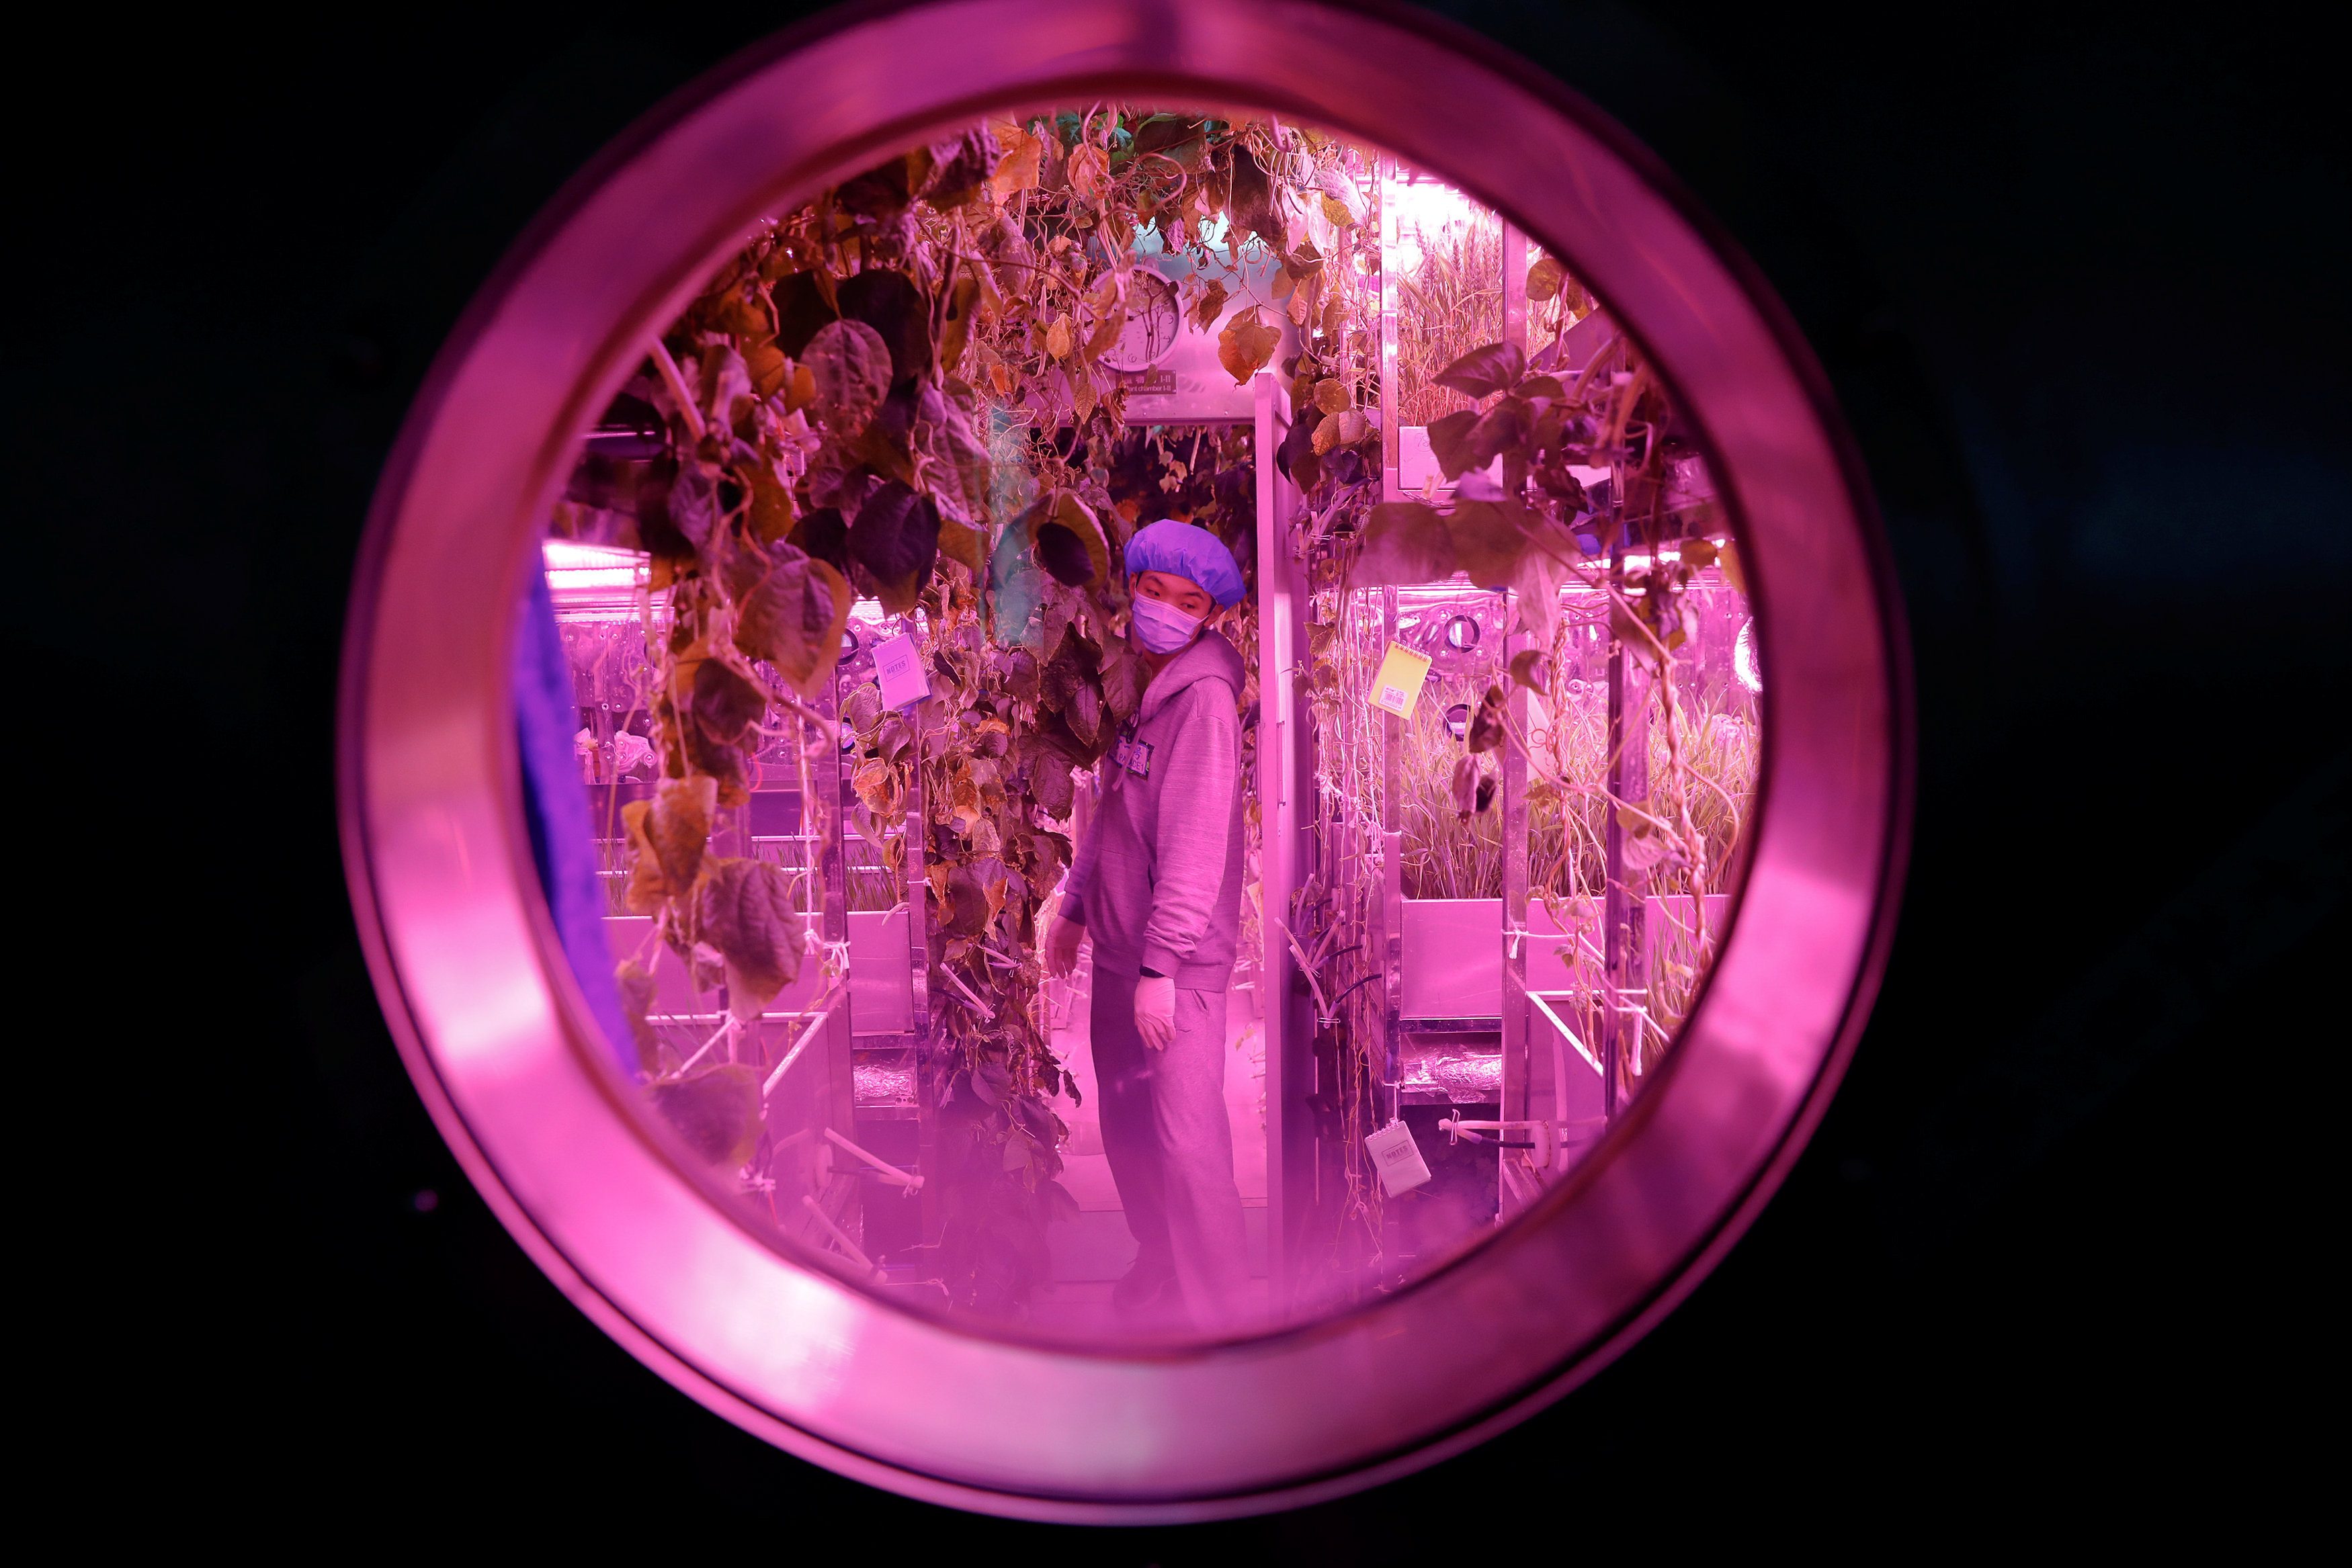 A volunteer checks on plants inside a simulated space cabin in which he temporarily lives with others as a part of the scientistic Lunar Palace 365 Project, at Beihang University in Beijing, China